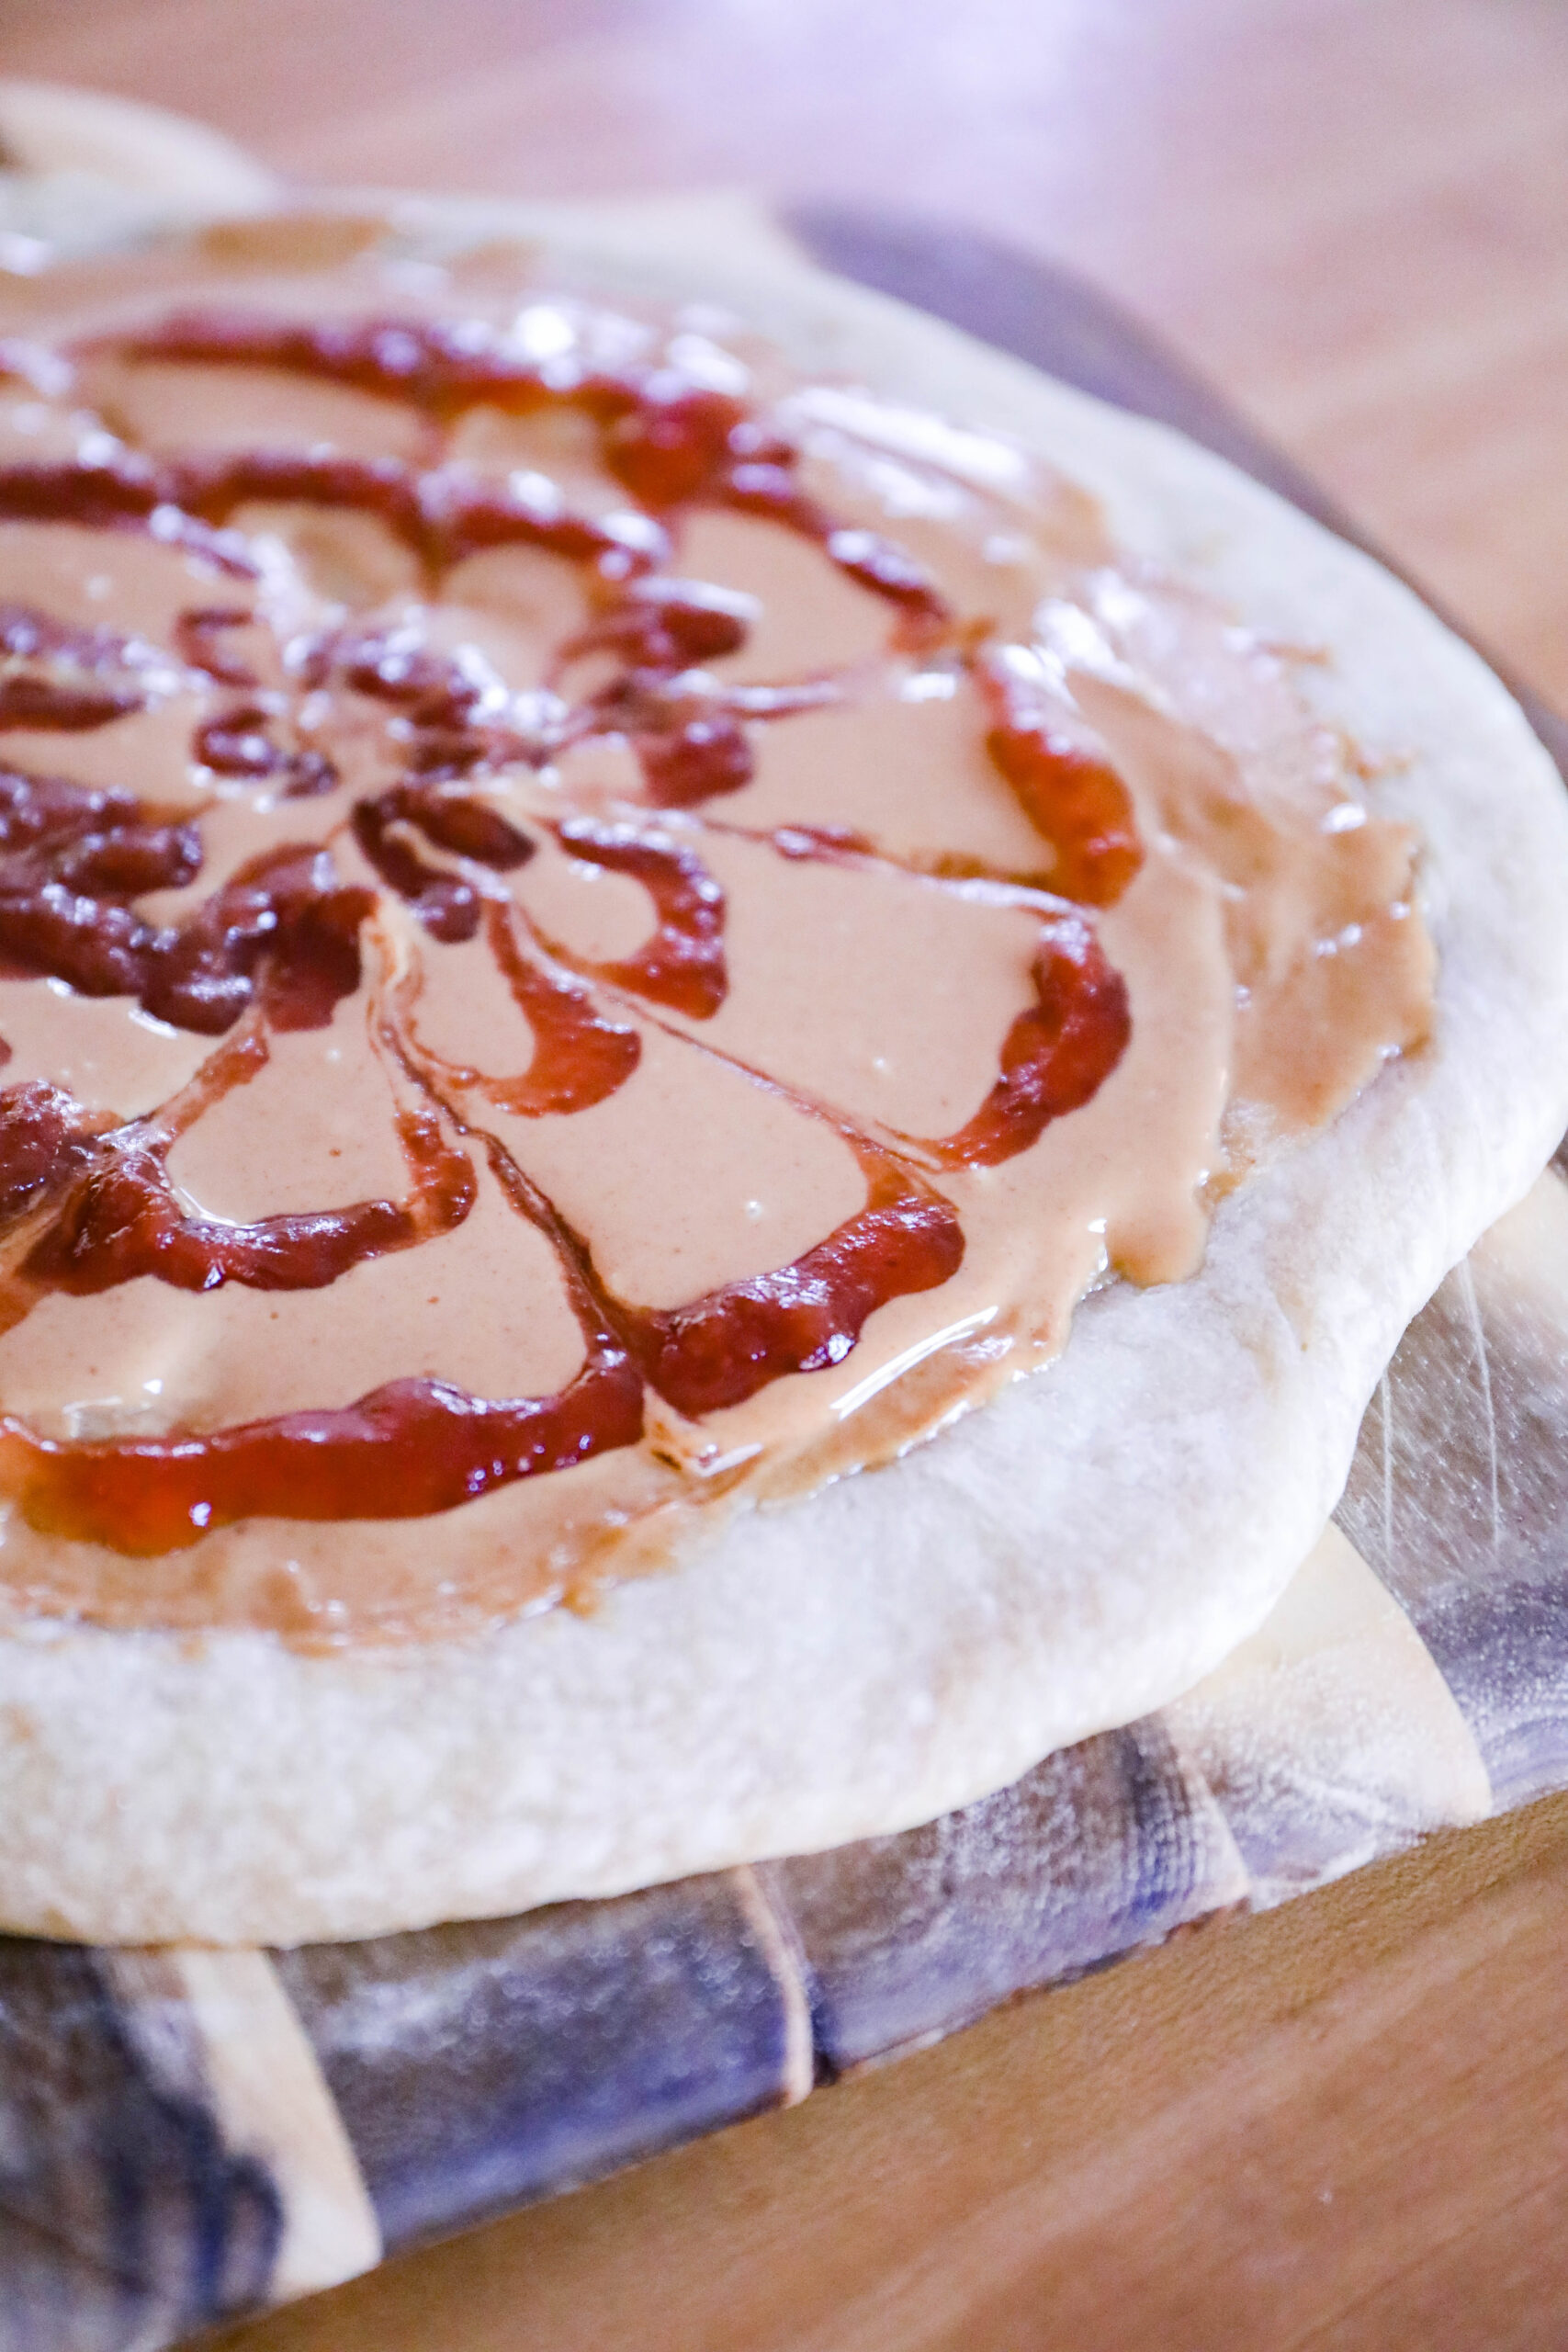 Have you had the Peanut Butter and Jelly pizza at Goofy's Kitchen? This copycat recipe is just like the real thing!